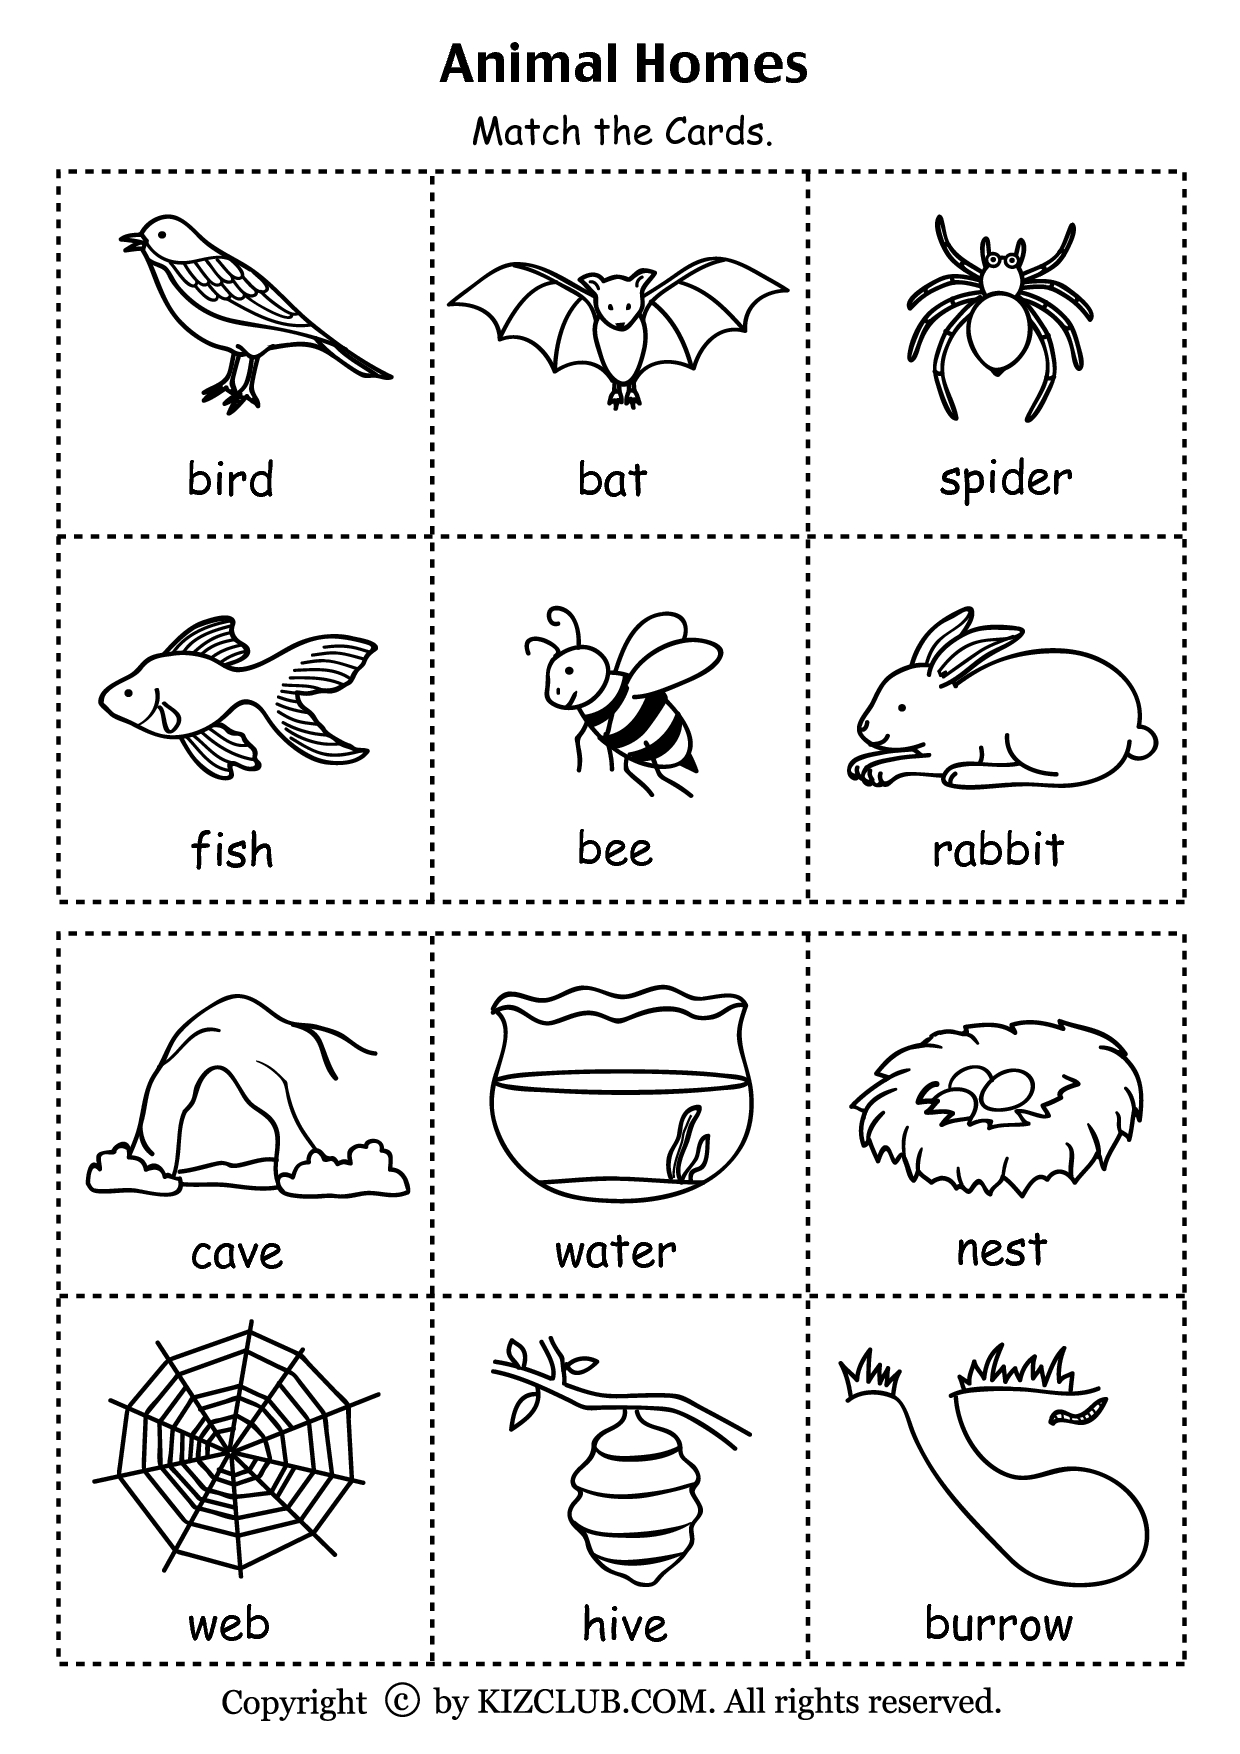 Animal Homes (Pdf) | Stuff To Buy | Preschool Science, Animal - Free Printable Worksheets Animal Habitats